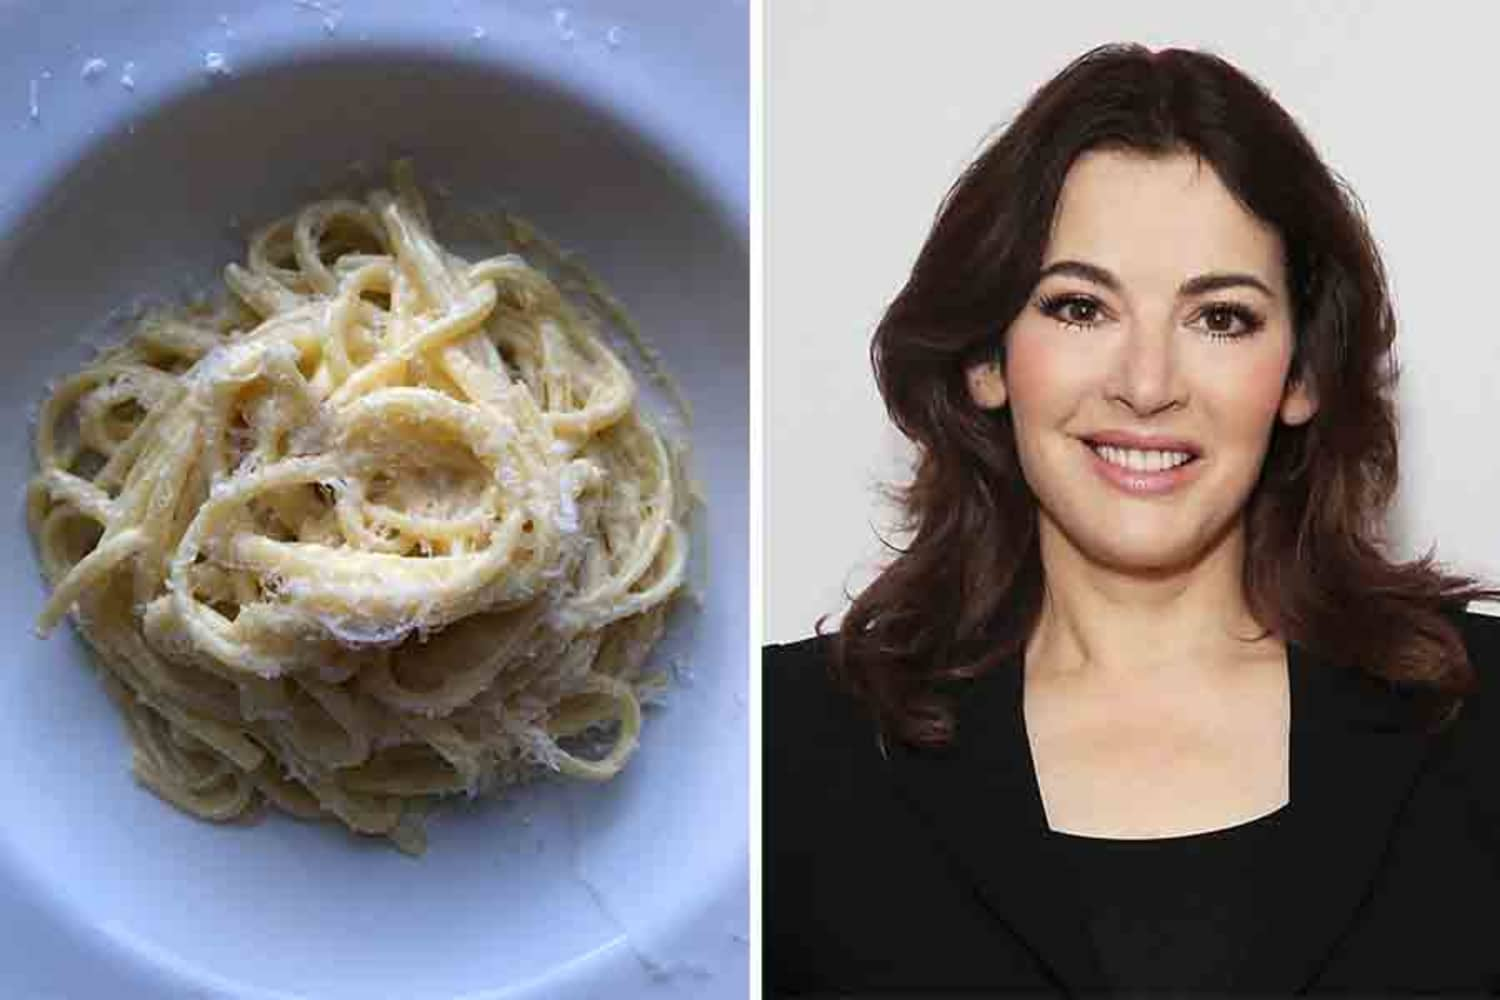 Nigella Lawson's Lemon Linguine Is the Carby, Creamy, Cheesy Recipe That Reminds Me How Much I Love Cooking